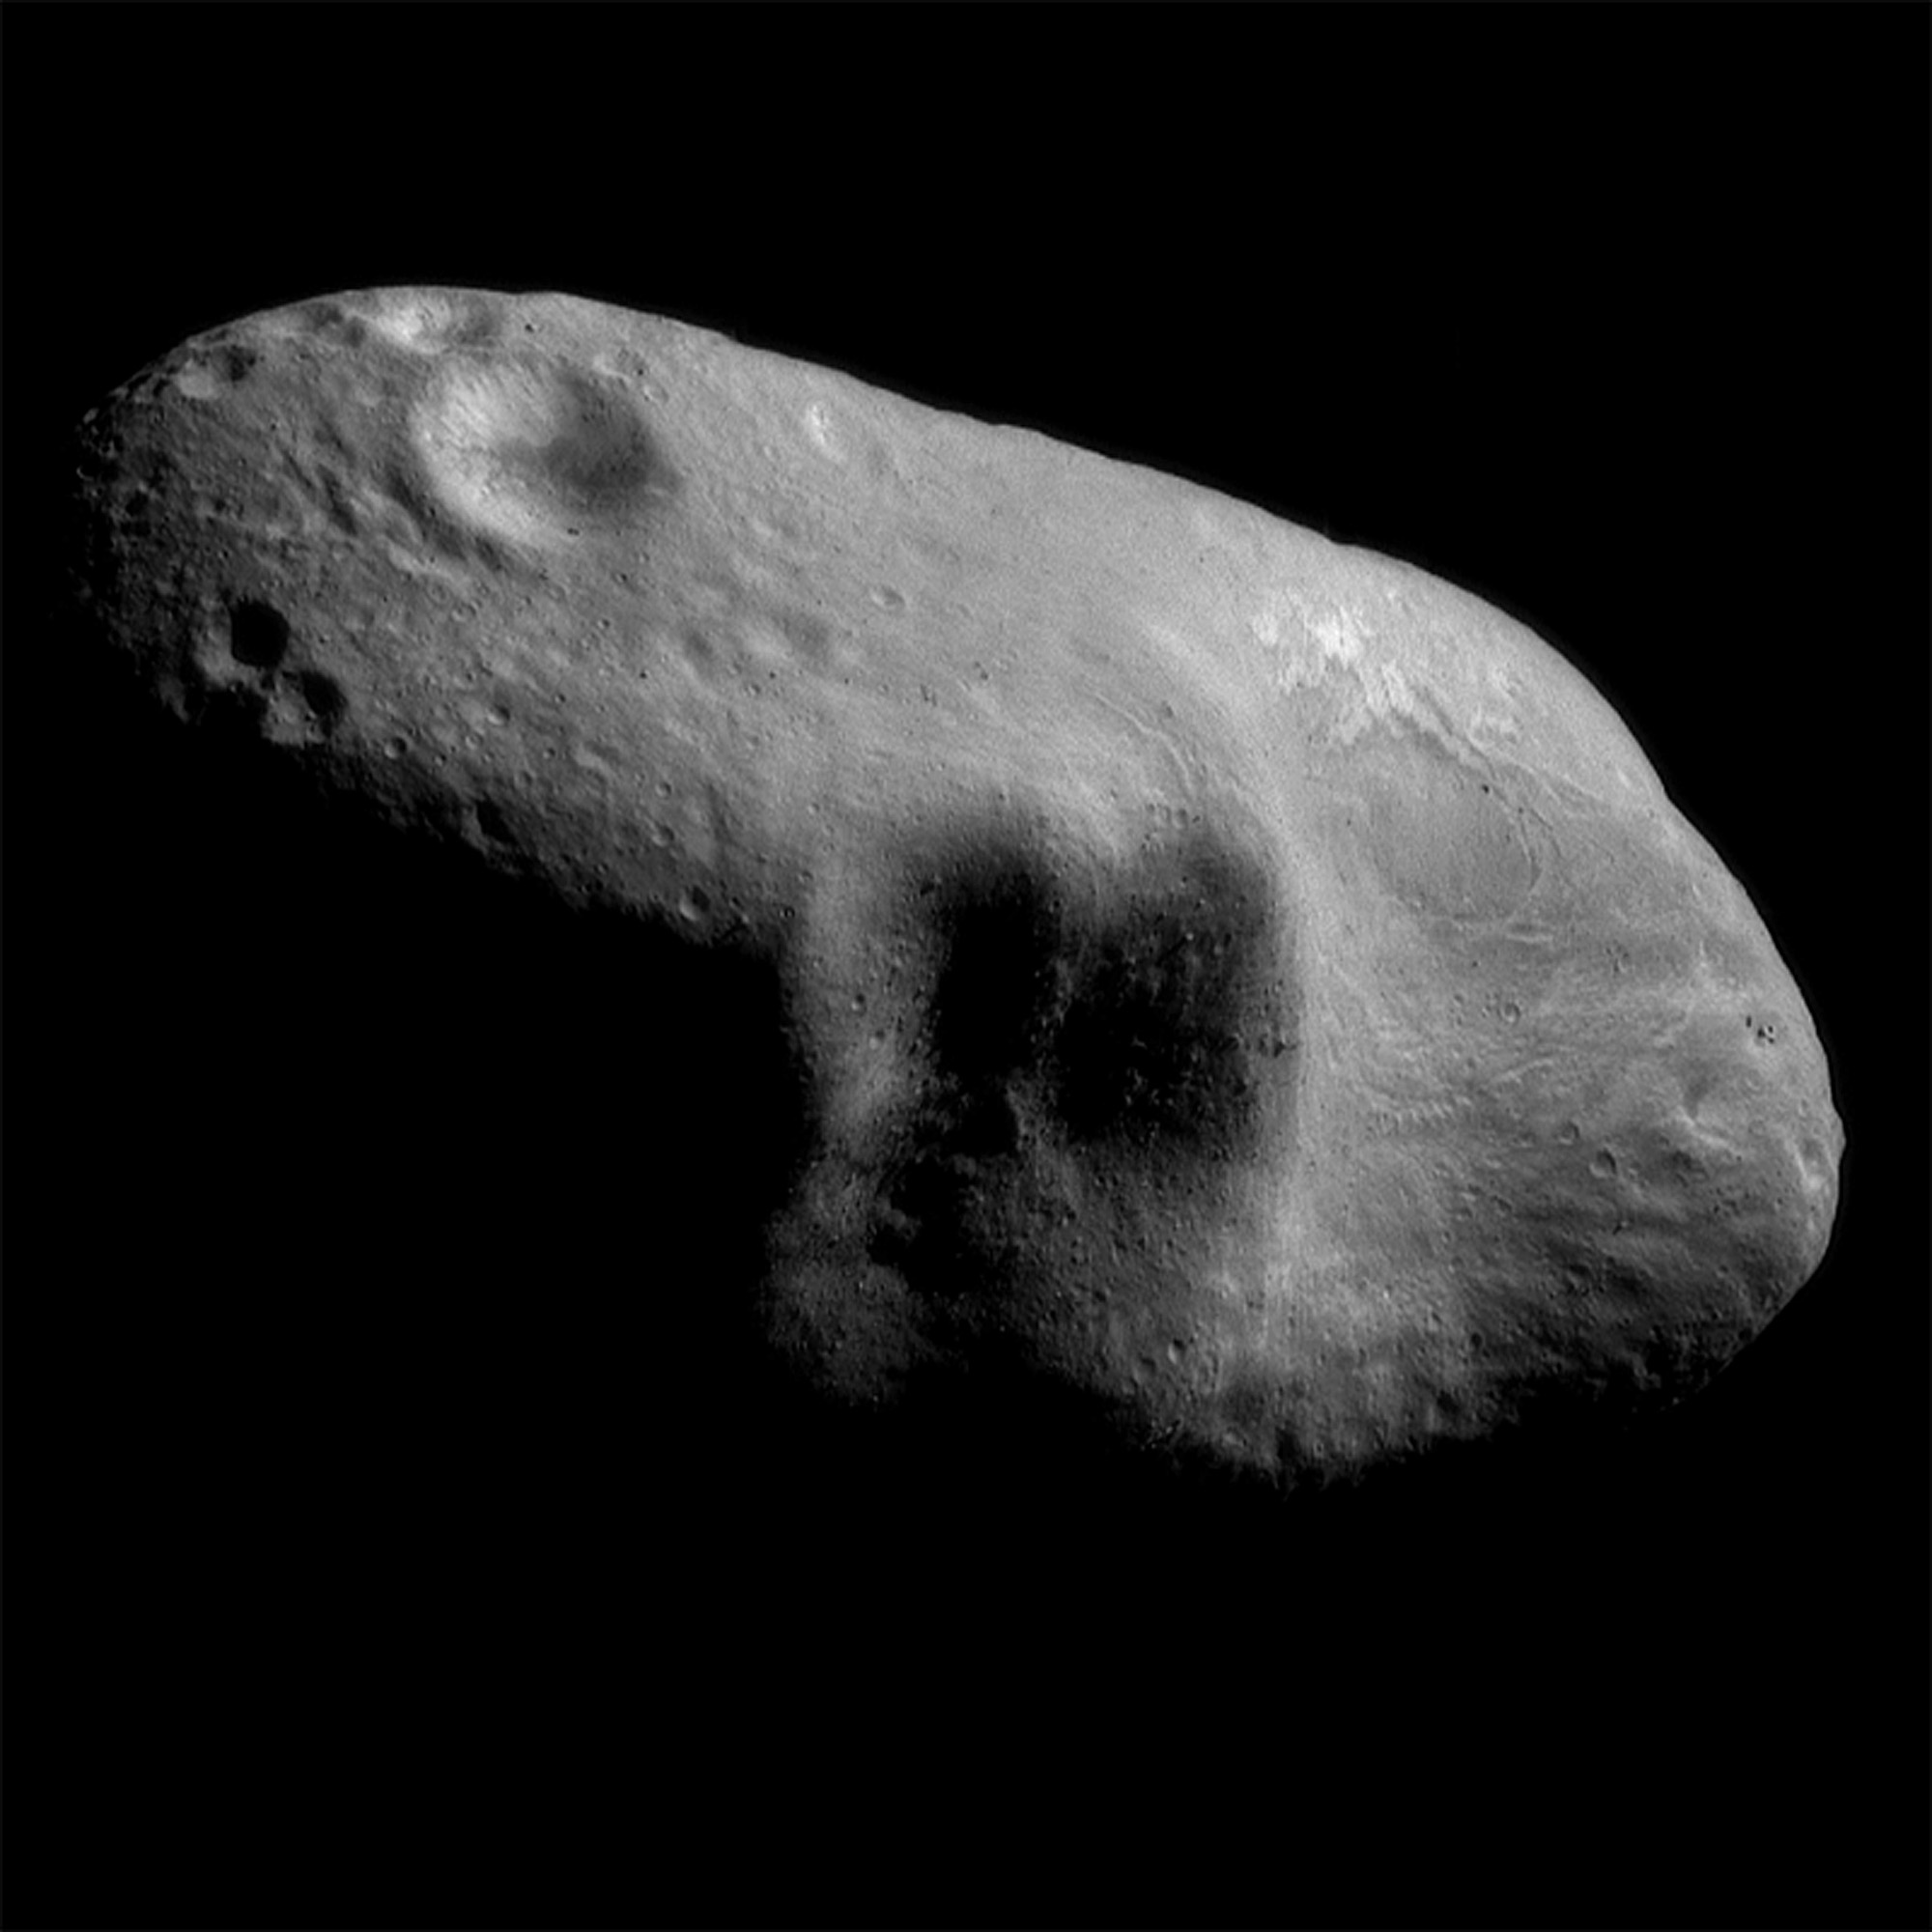 The asteroid Eros: So...not exactly Mars